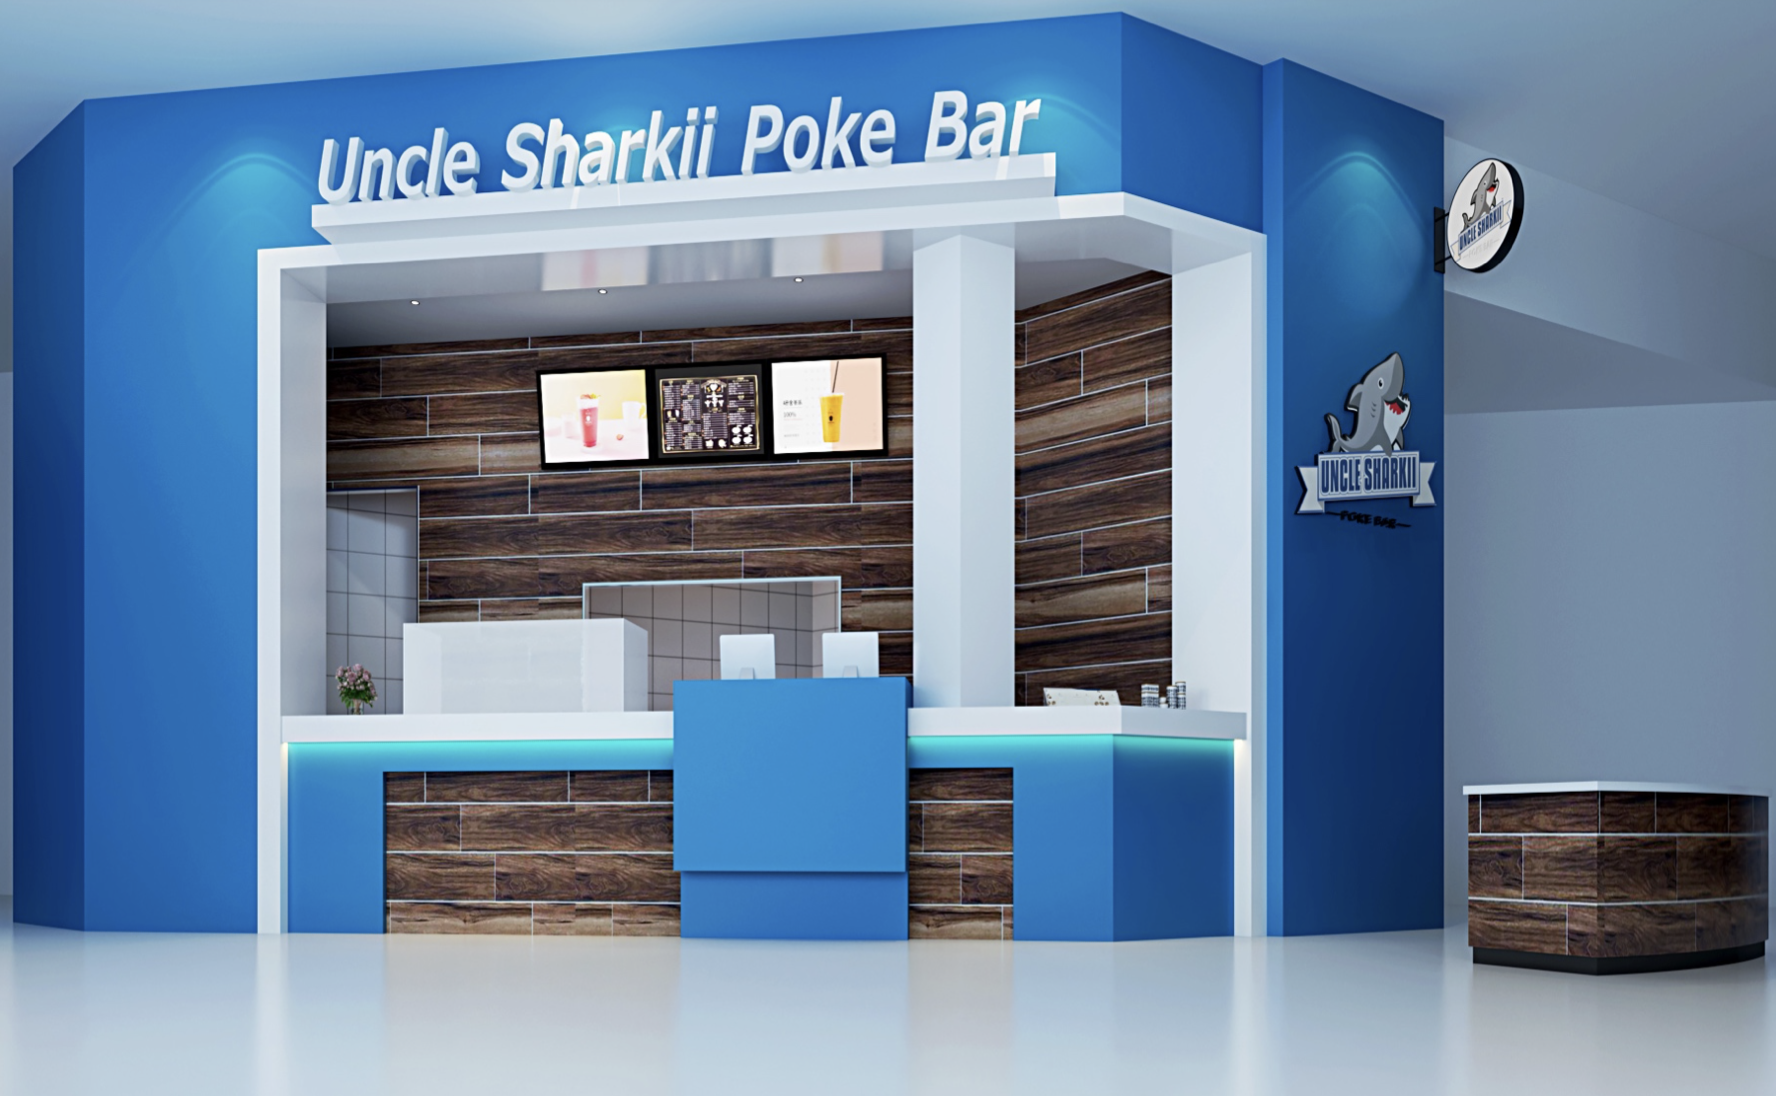 Uncle Sharkii Poke Bar storefront